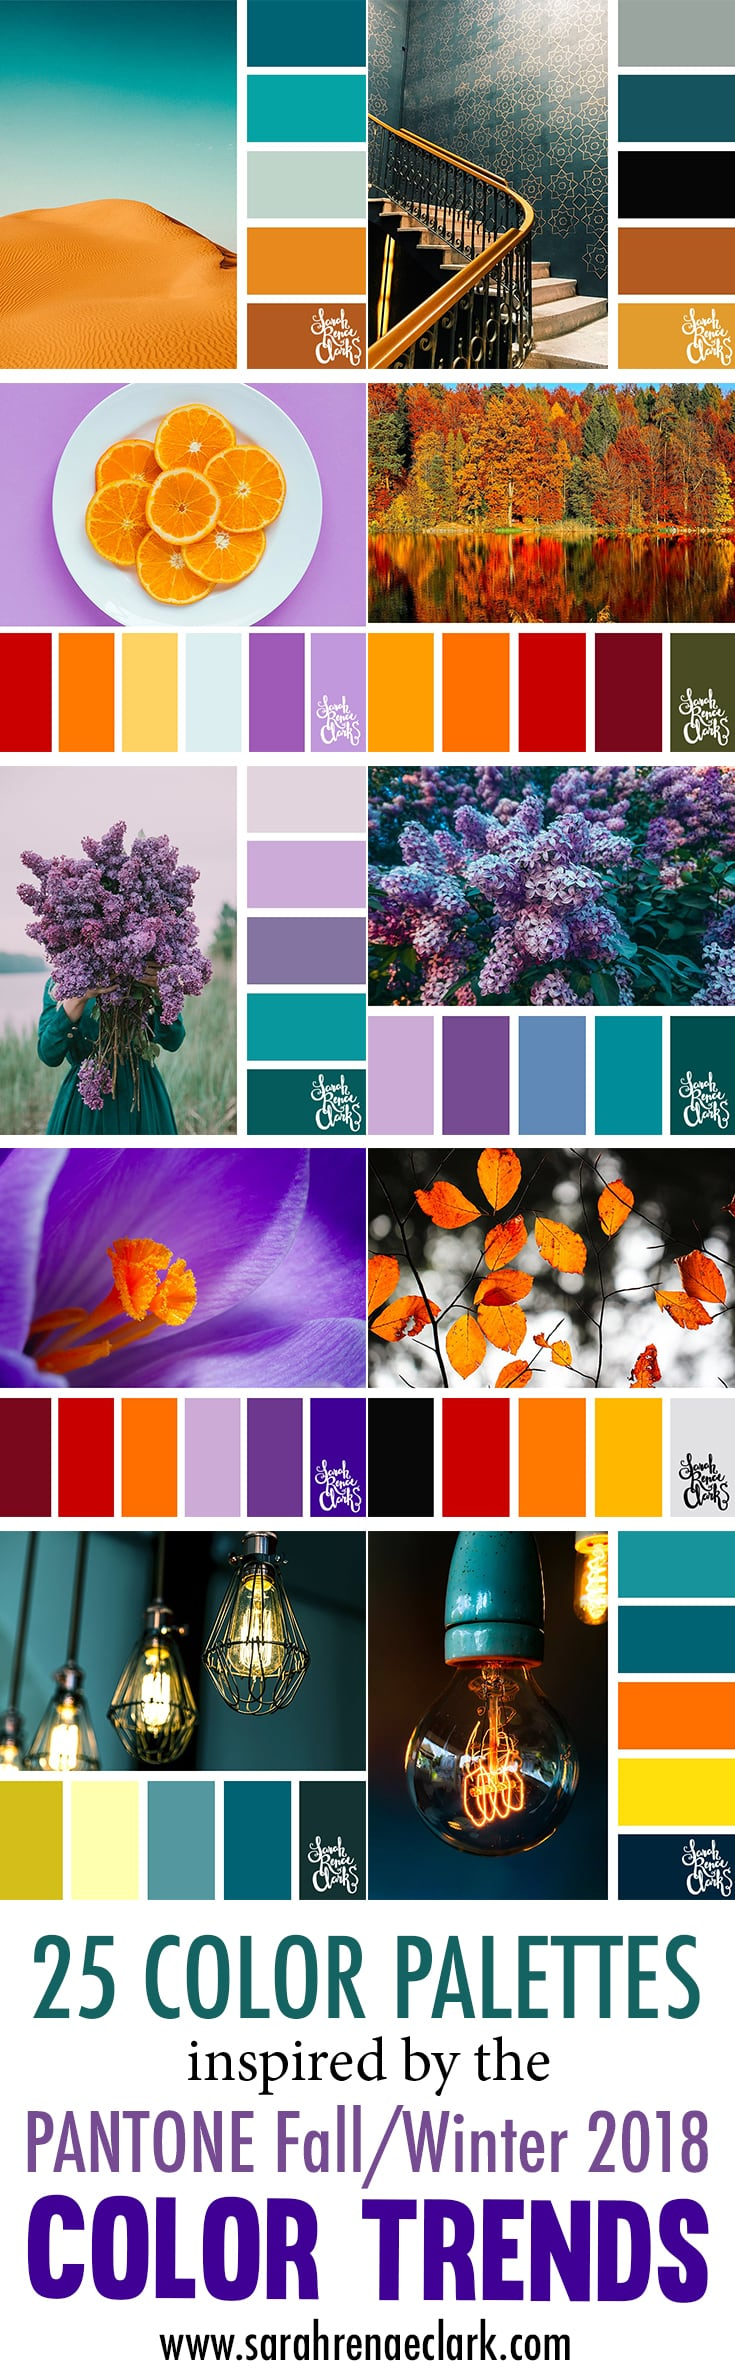 Color Trends Fall 2018 25 Color Palettes Inspired By The Pantone Fall Winter 2018 Color